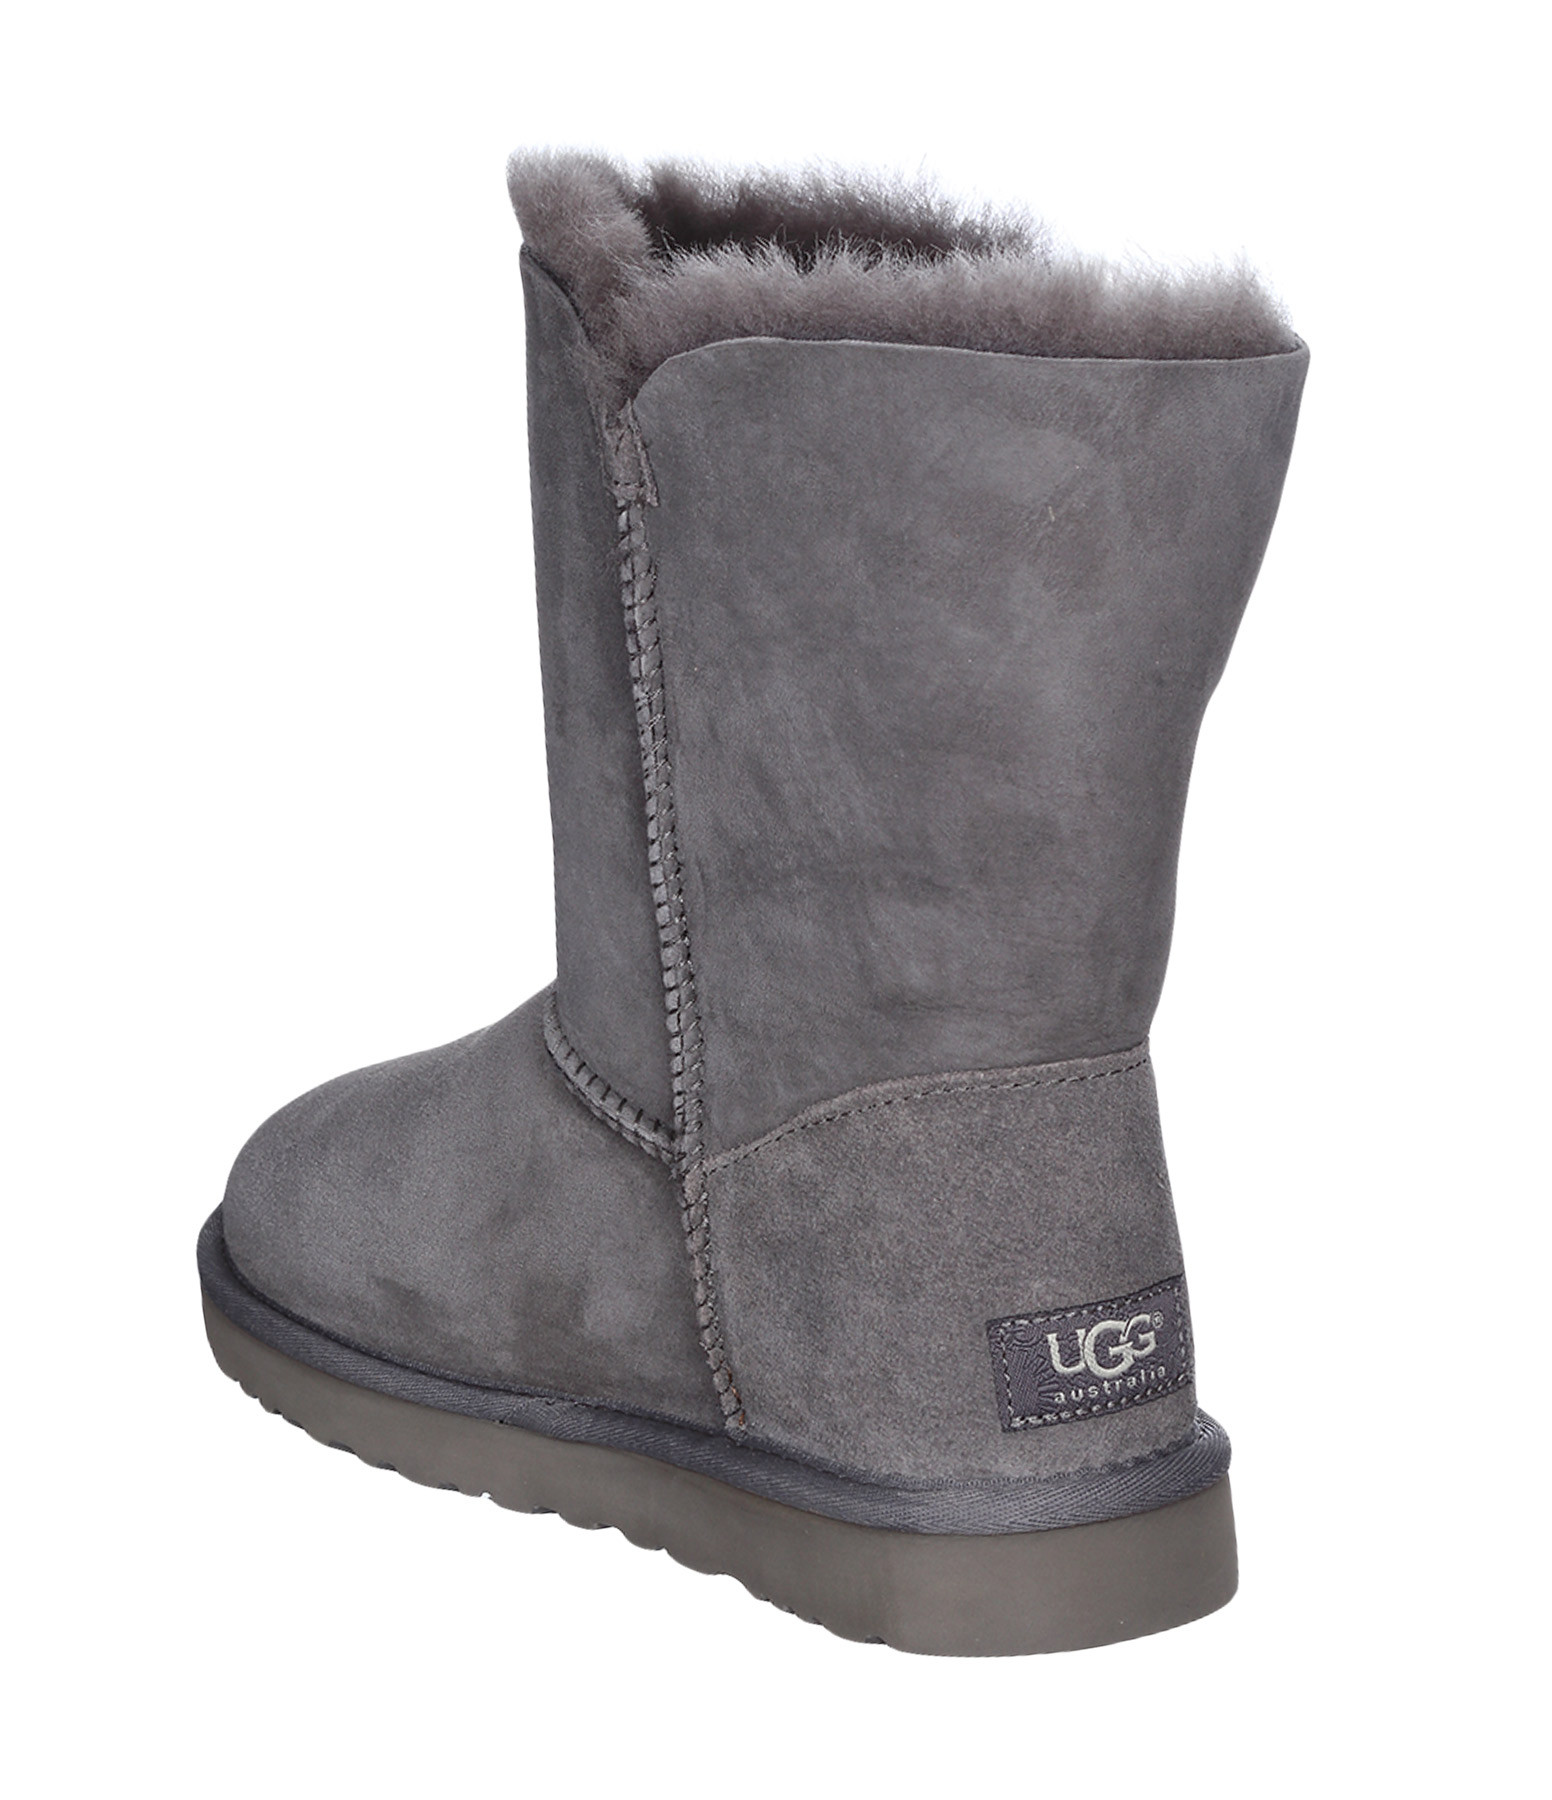 Boots Bailey Button Grey - UGG